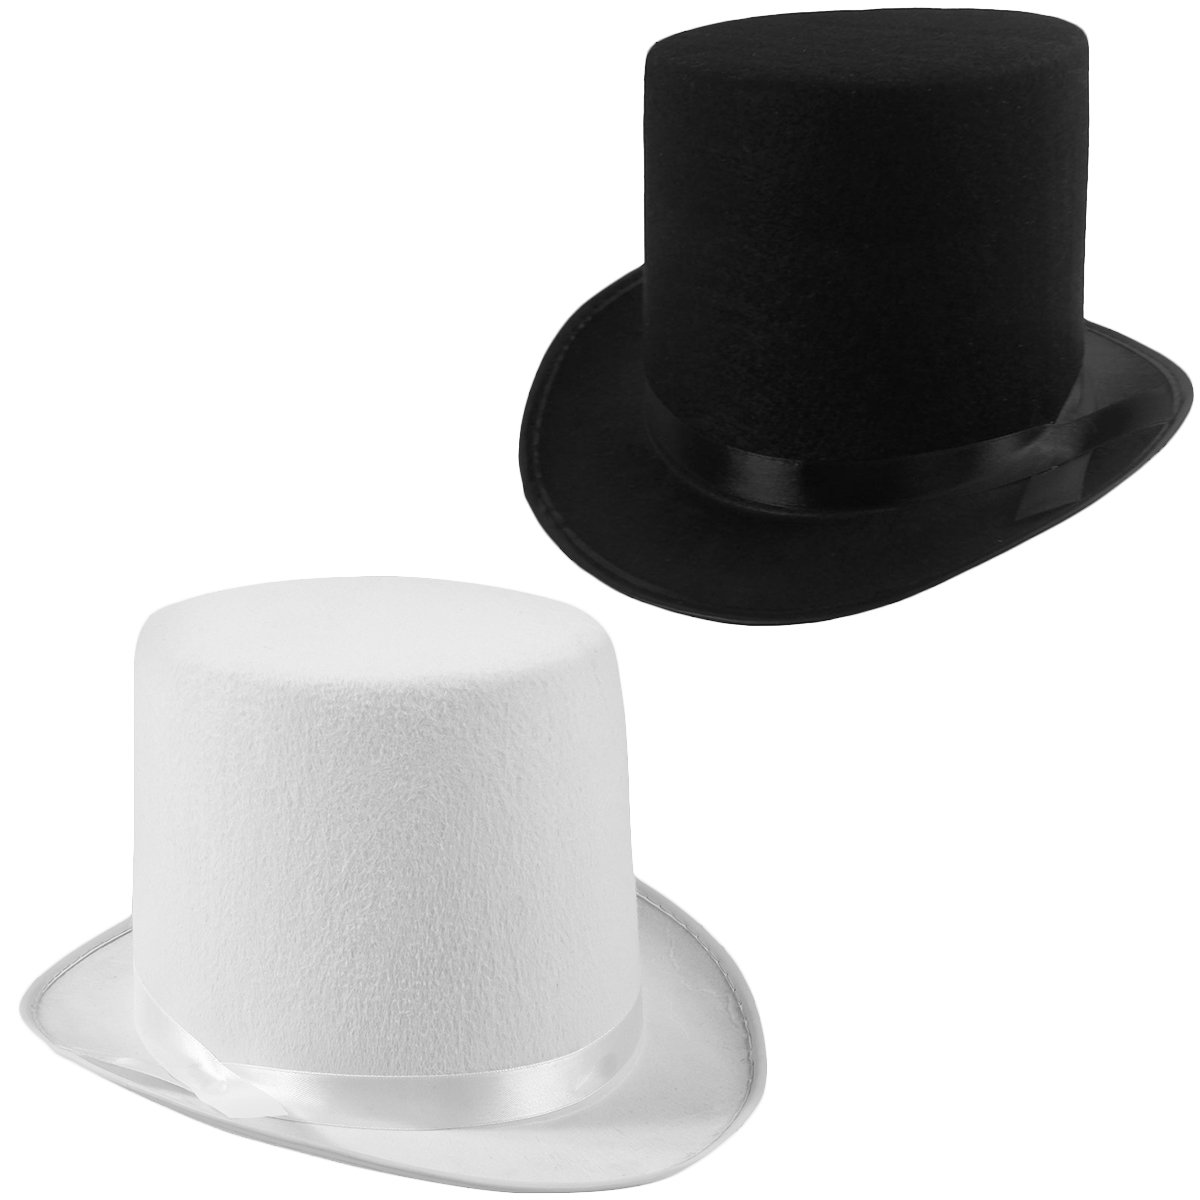 Funny Party Hats Felt Top Hats - 2 Pack - 1 Black & 1 White Top Hat Costume Hats am343-ab507